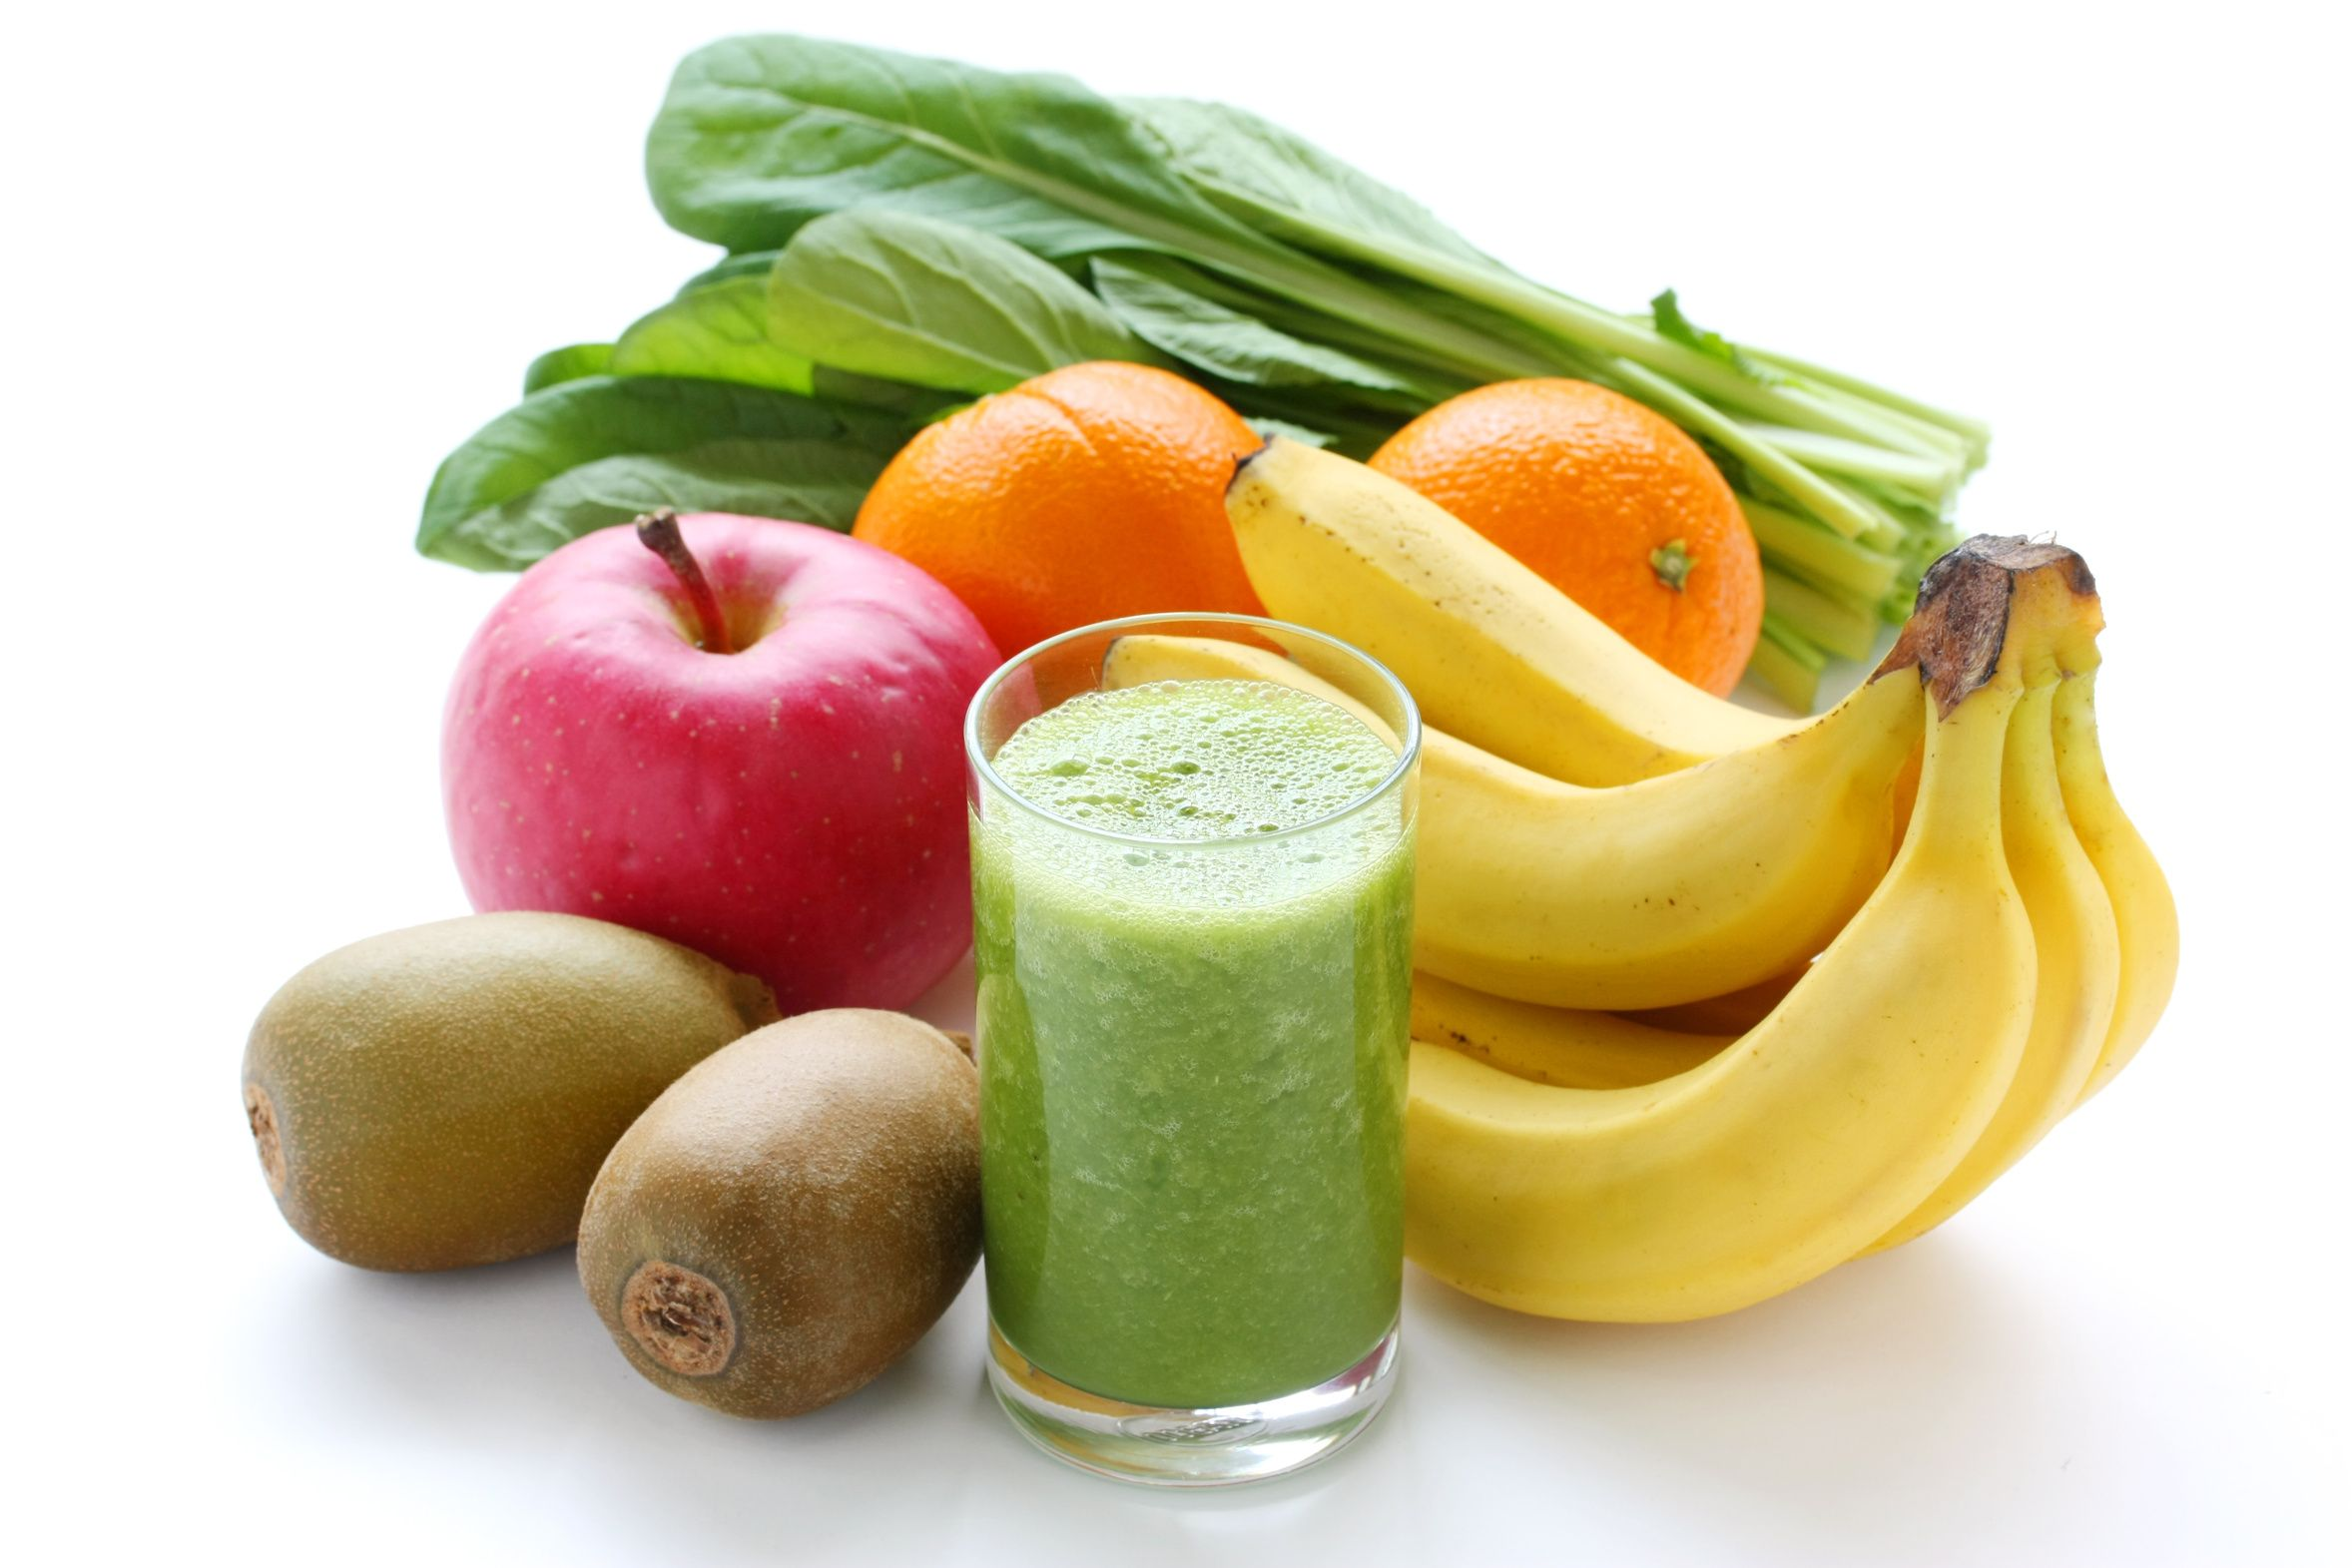 Green Apple Smoothie Recipes; 1 scoop protein, 1 c. water, 1 apple, 1 orange, 1 banana, 2 handfuls spinach, 1 medium carrot